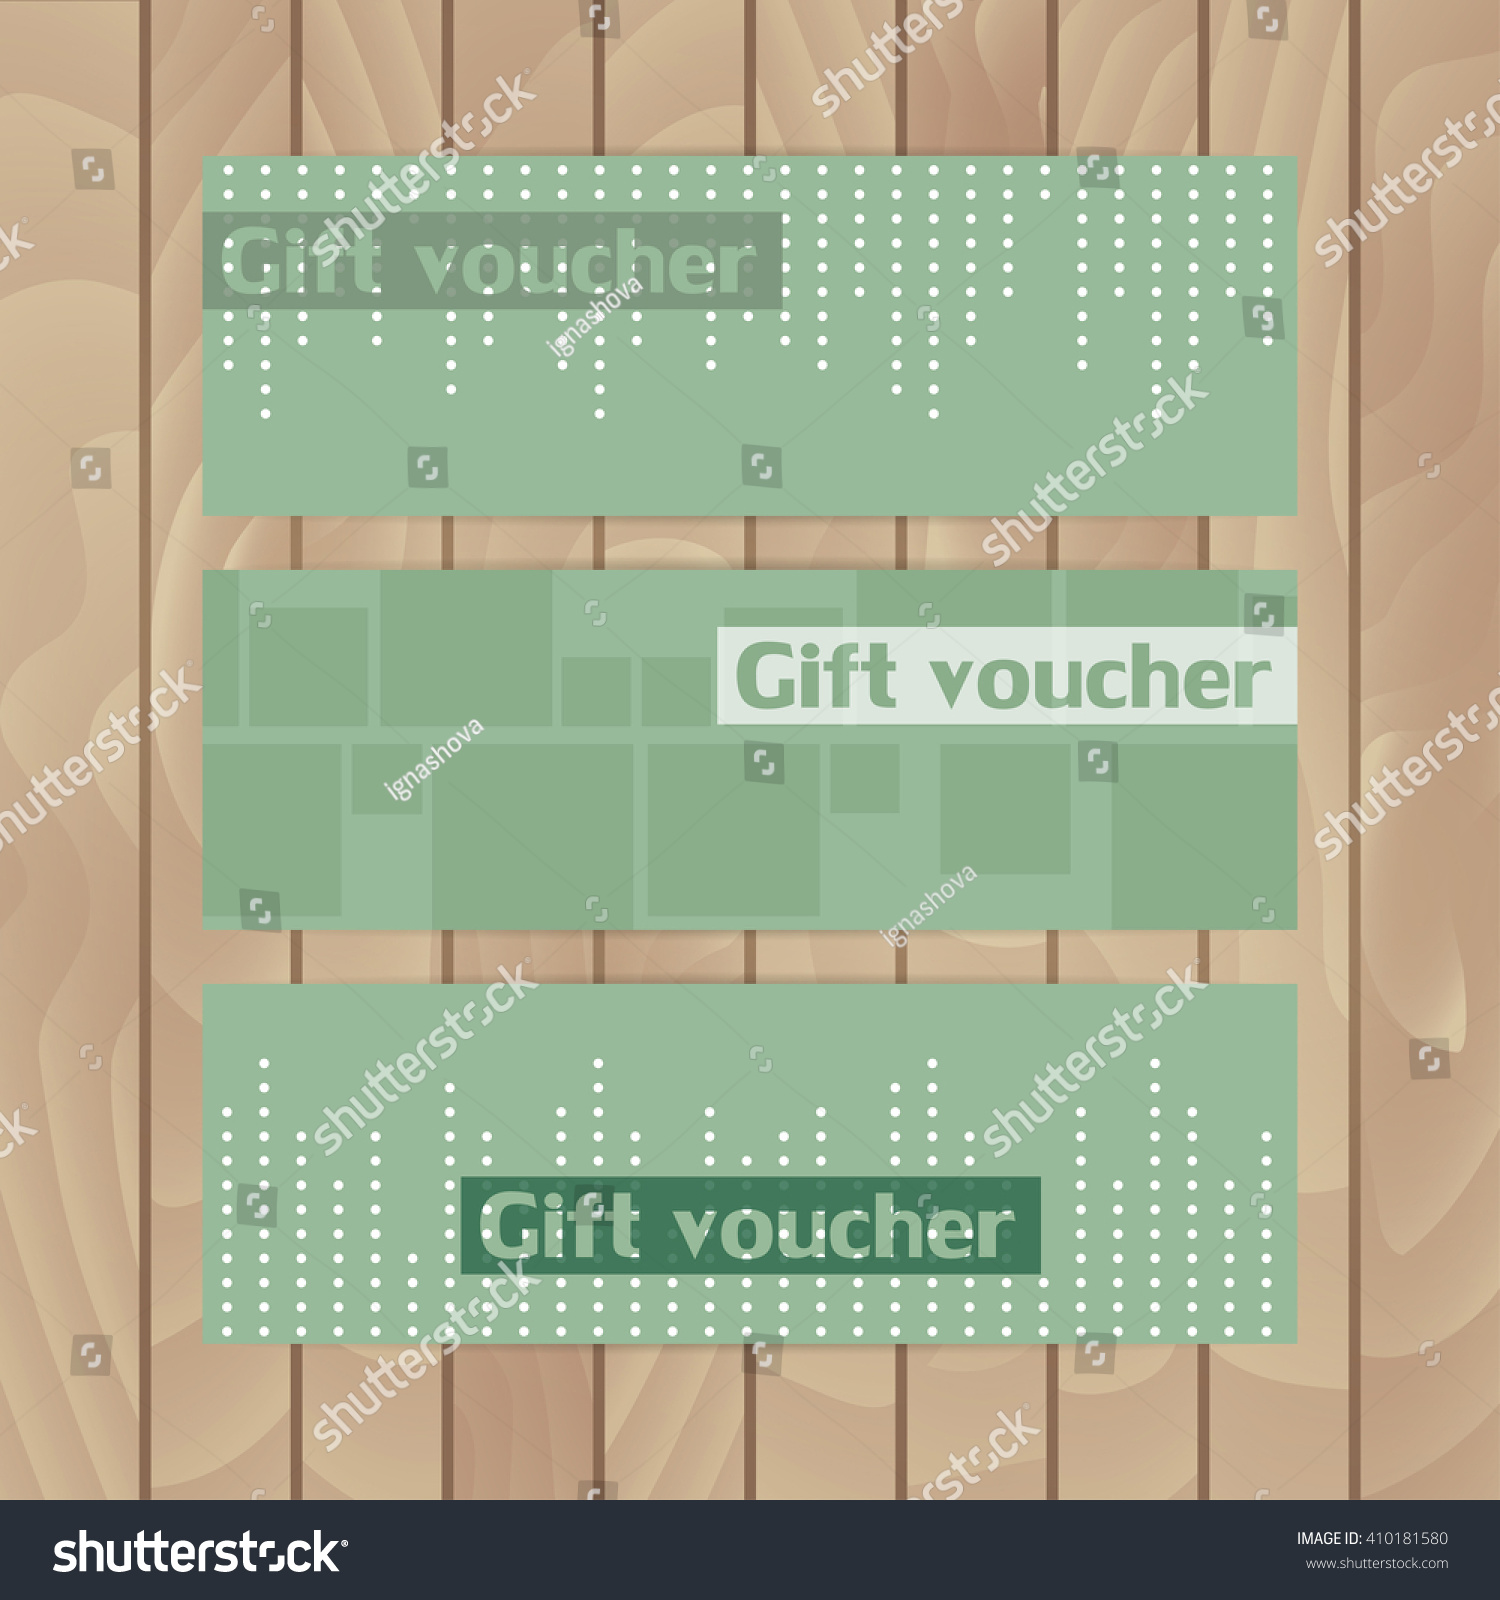 Set Vector Flyers Three Flyer Stock Royalty Free Voucher Layout Dark Green Abstraction Dots